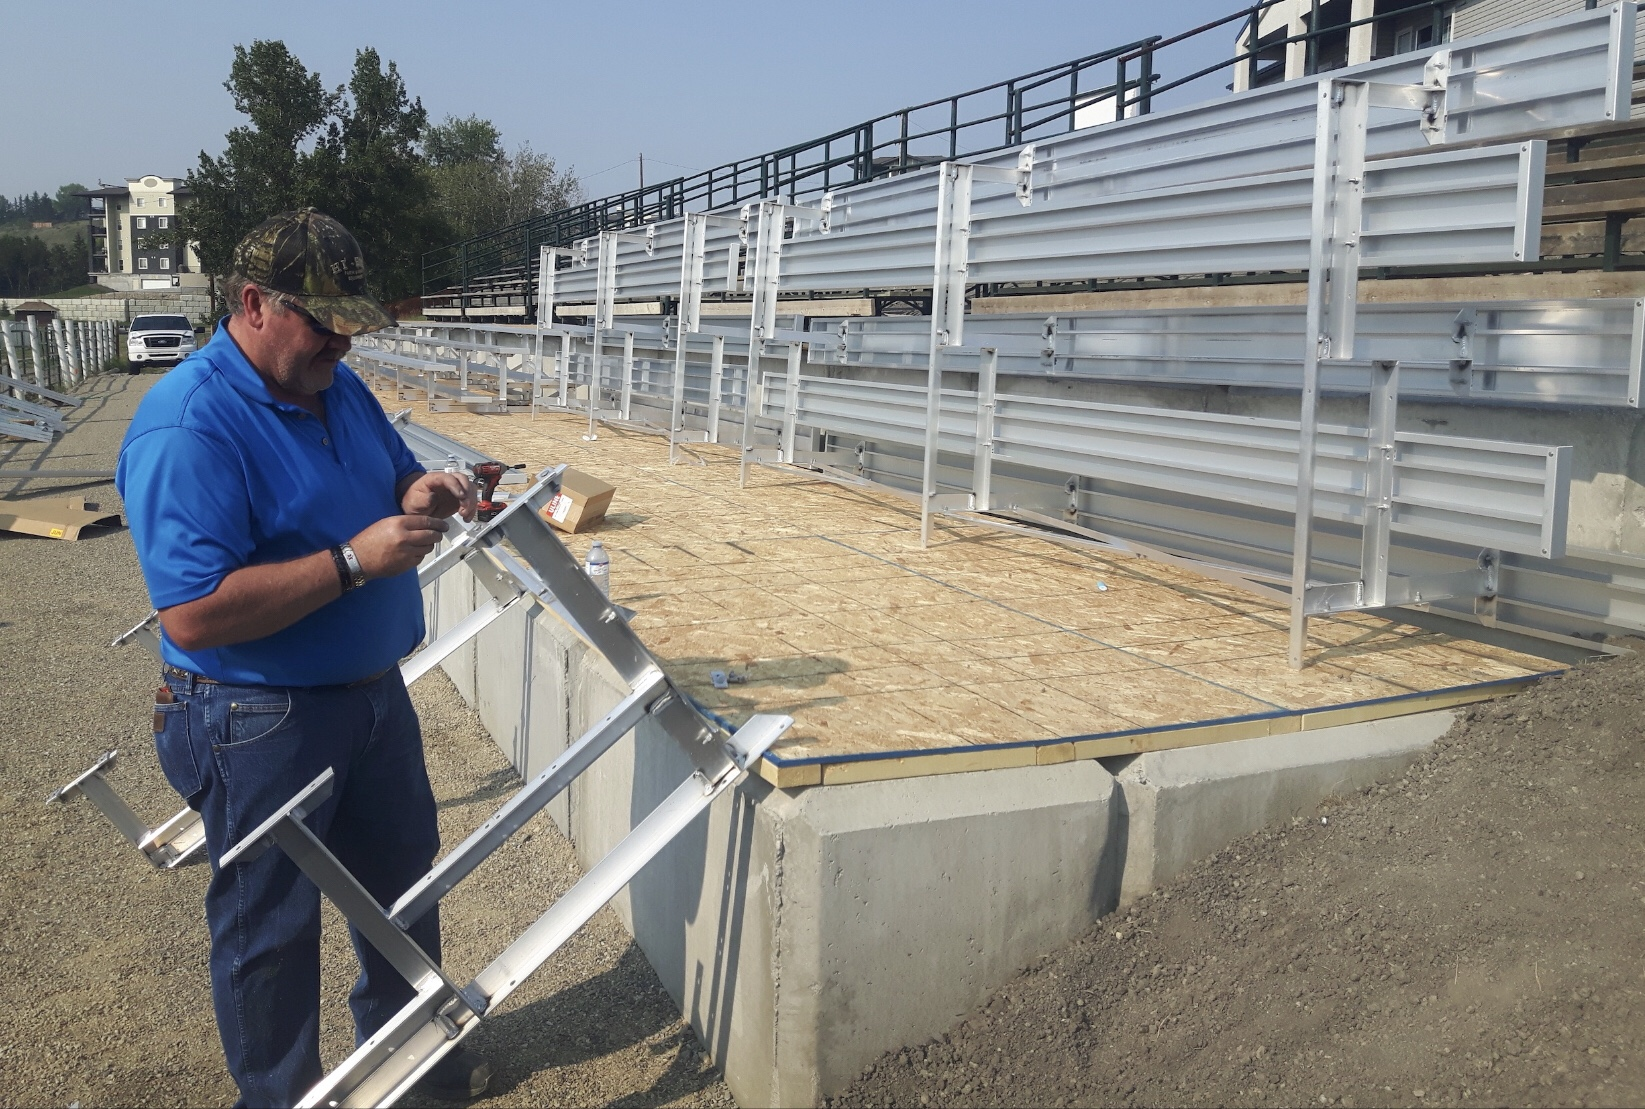 New Bleachers for the Rodeo and beyond